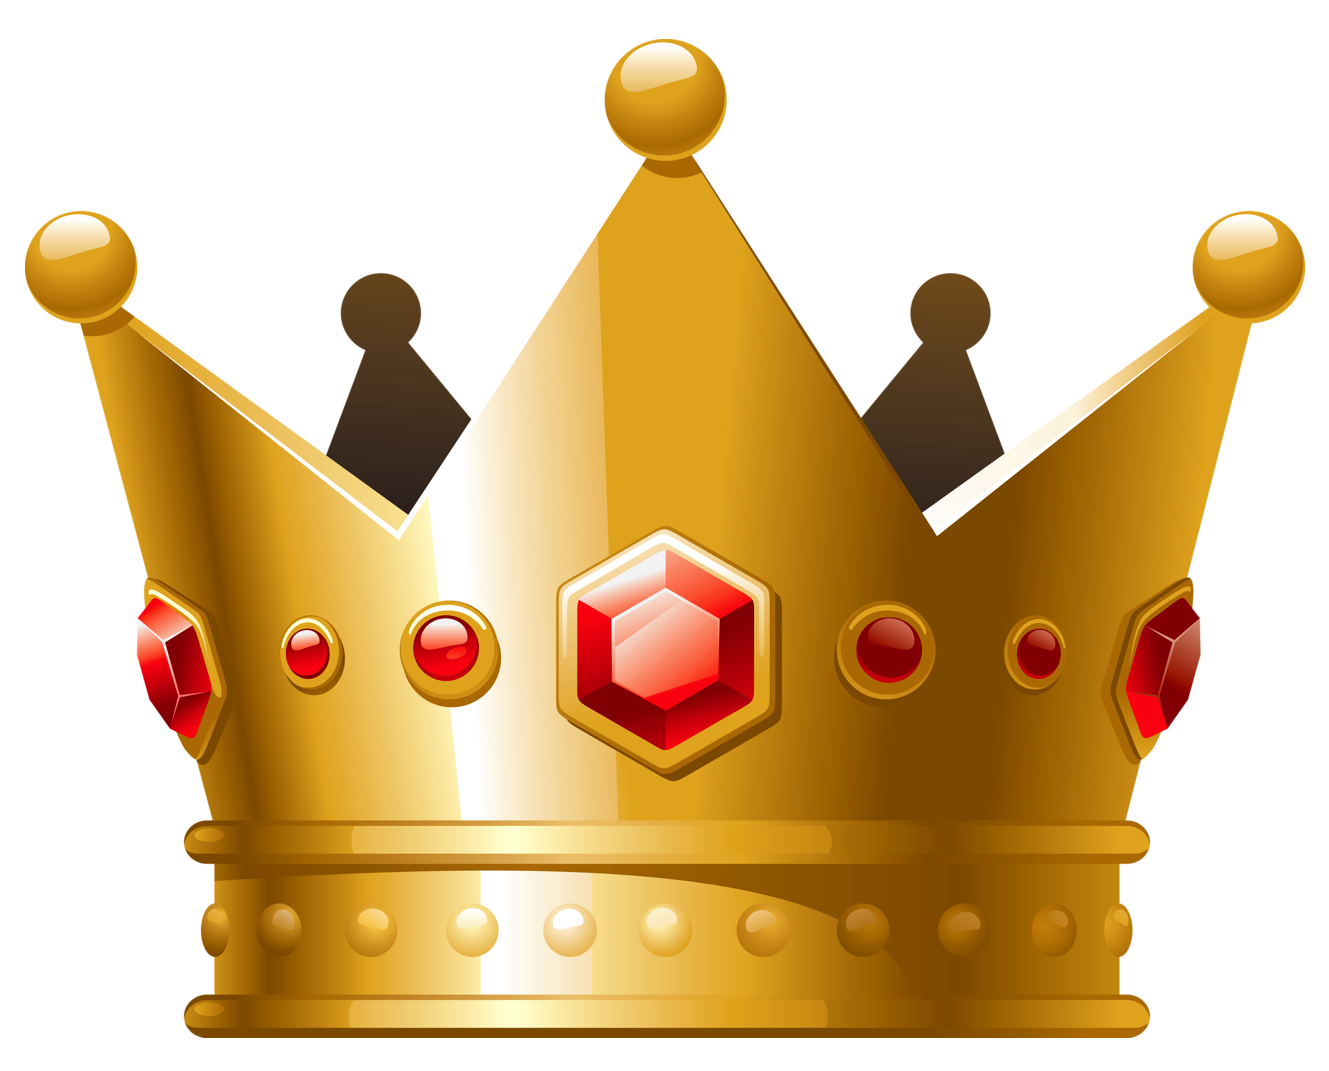 Monkey with a crown clipart freeuse Crown transparent crown image with transparent background 2 | Crowns ... freeuse